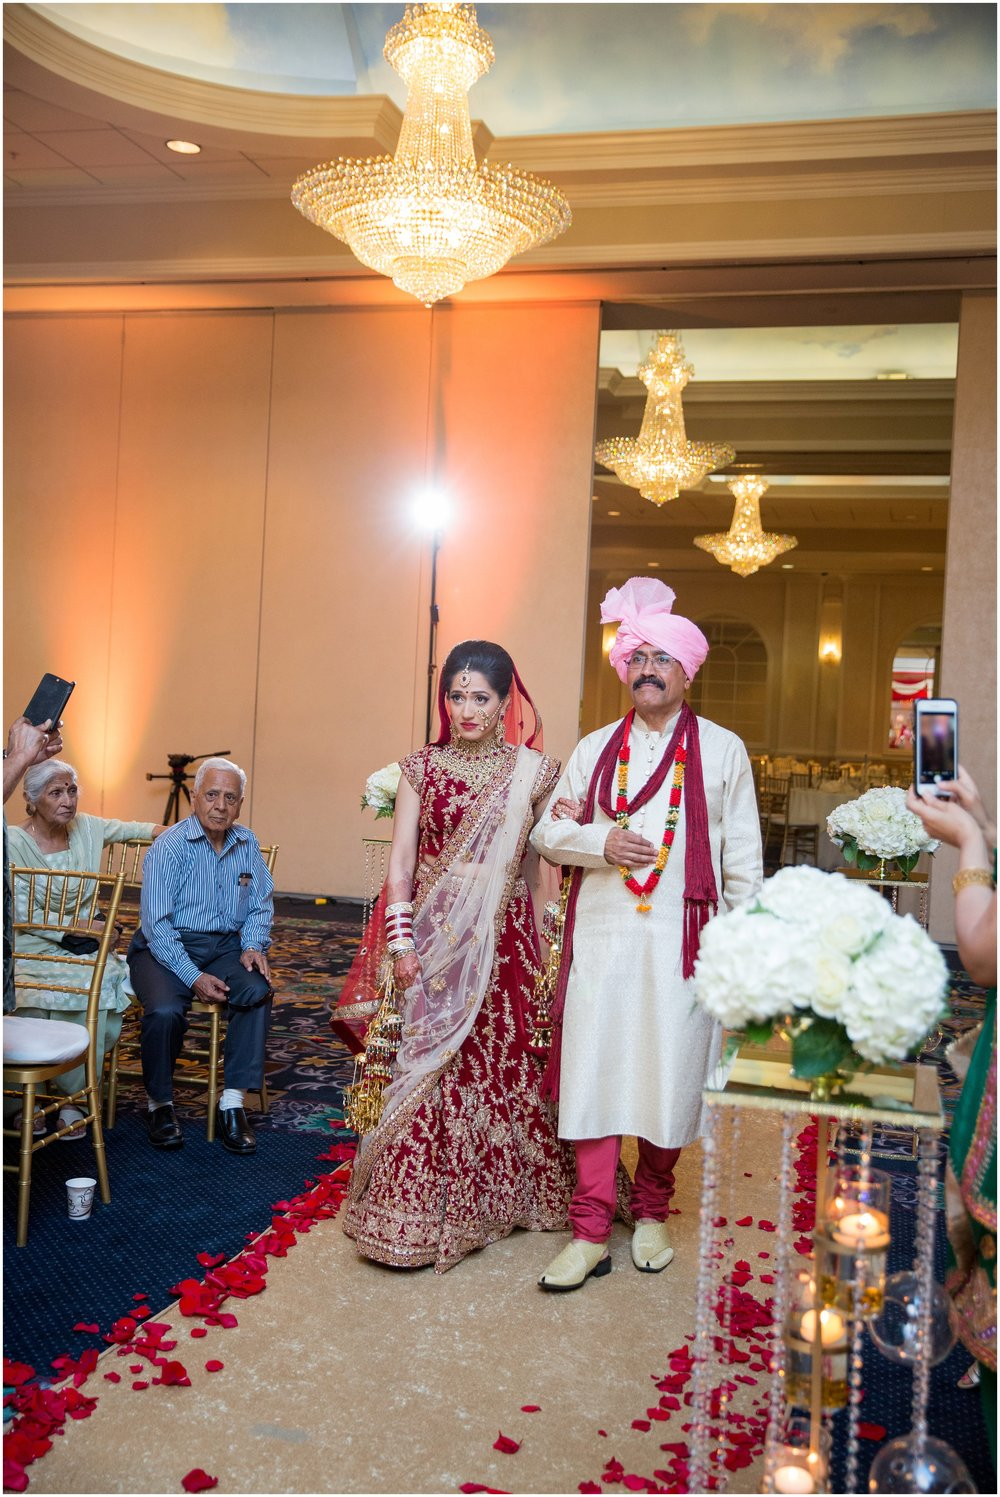 Le Cape Weddings - South Asian Wedding in Illinois - Tanvi and Anshul -9264_LuxuryDestinationPhotographer.jpg